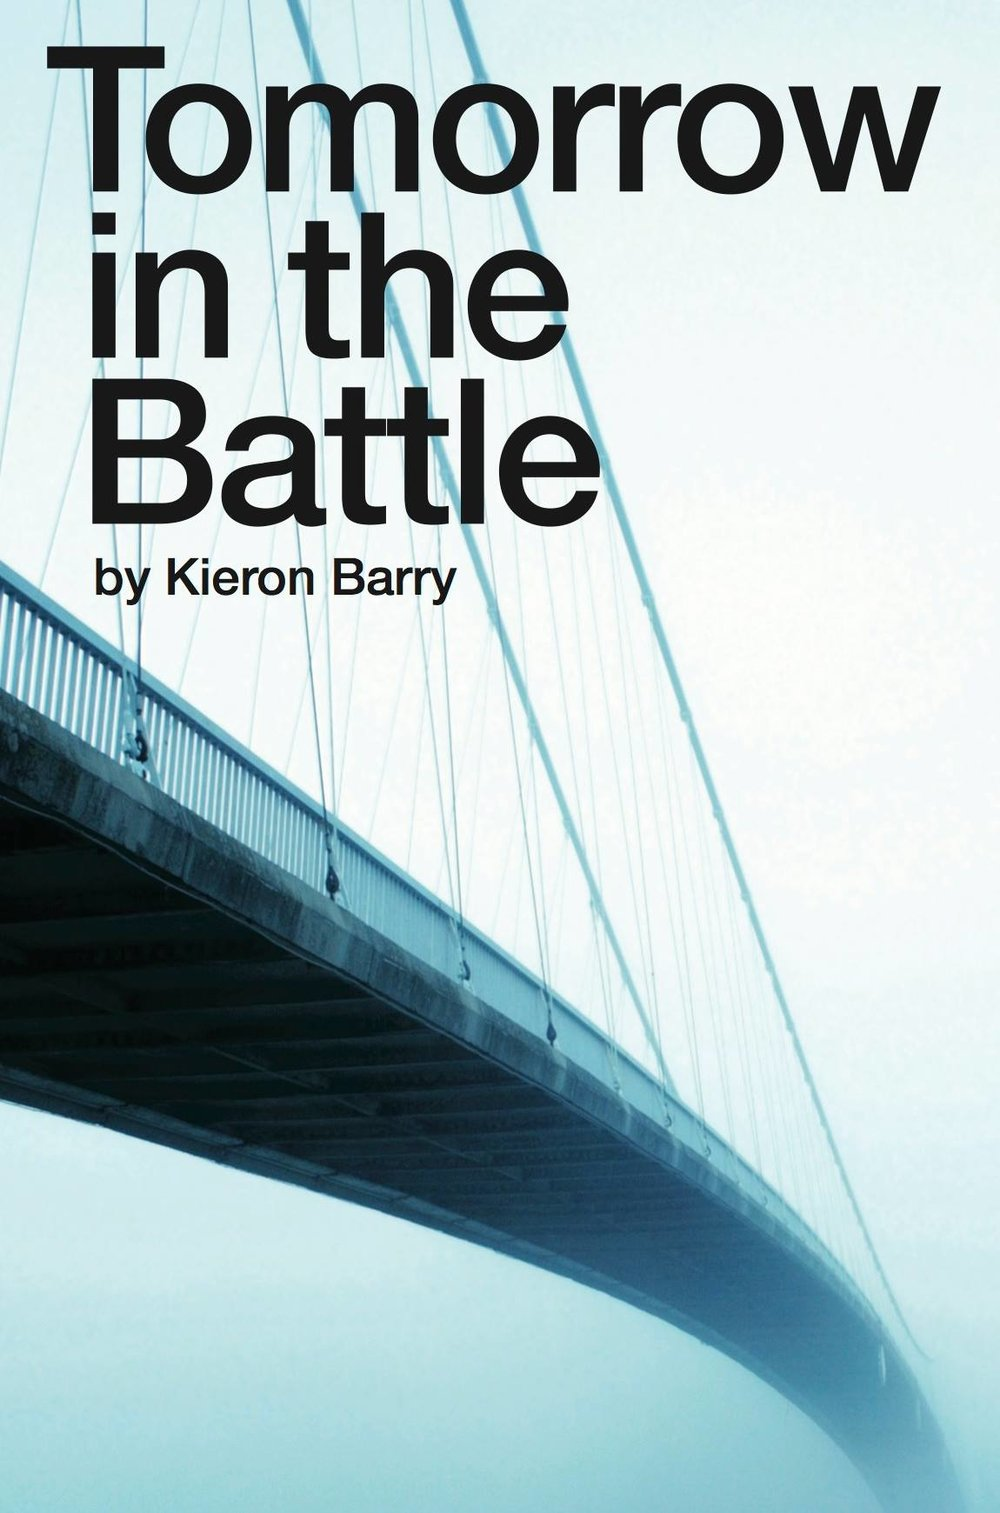 Kieron Barry: (Playwright) was born in Stratford-upon-Avon. He survived a disastrous education at Glebelands School in Cranleigh and went on to take degrees at the University of Durham and Goldsmiths' College, London.   His plays include the verbatim drama Stockwell, which enjoyed two sell-out runs in London. It was described by The Times in its five-star review as 'more gripping than anything else to be seen in the London theatre' and by the Daily Express as 'stark, stunning... deeply poignant... one of the most important plays of the year.' The play prompted Barry's nomination for the Charles Wintour Award for Most Promising Playwright at the London Evening Standard Theatre Awards.   He is also the author of the one-act comedy Numbers, described as 'sharp and funny, terrifying and inspiring' in Lucy Kerbel's book 100 Great Plays For Women where it appeared alongside plays by Oscar Wilde, Tennessee Williams and Euripides.  His other plays include Black Soap, Cumquats, Why Are We In Afghanistan? and In Kinshasa A Baboushka Makes Moussaka In Her Larder. www.Facebook.com/KieronBarry.net/